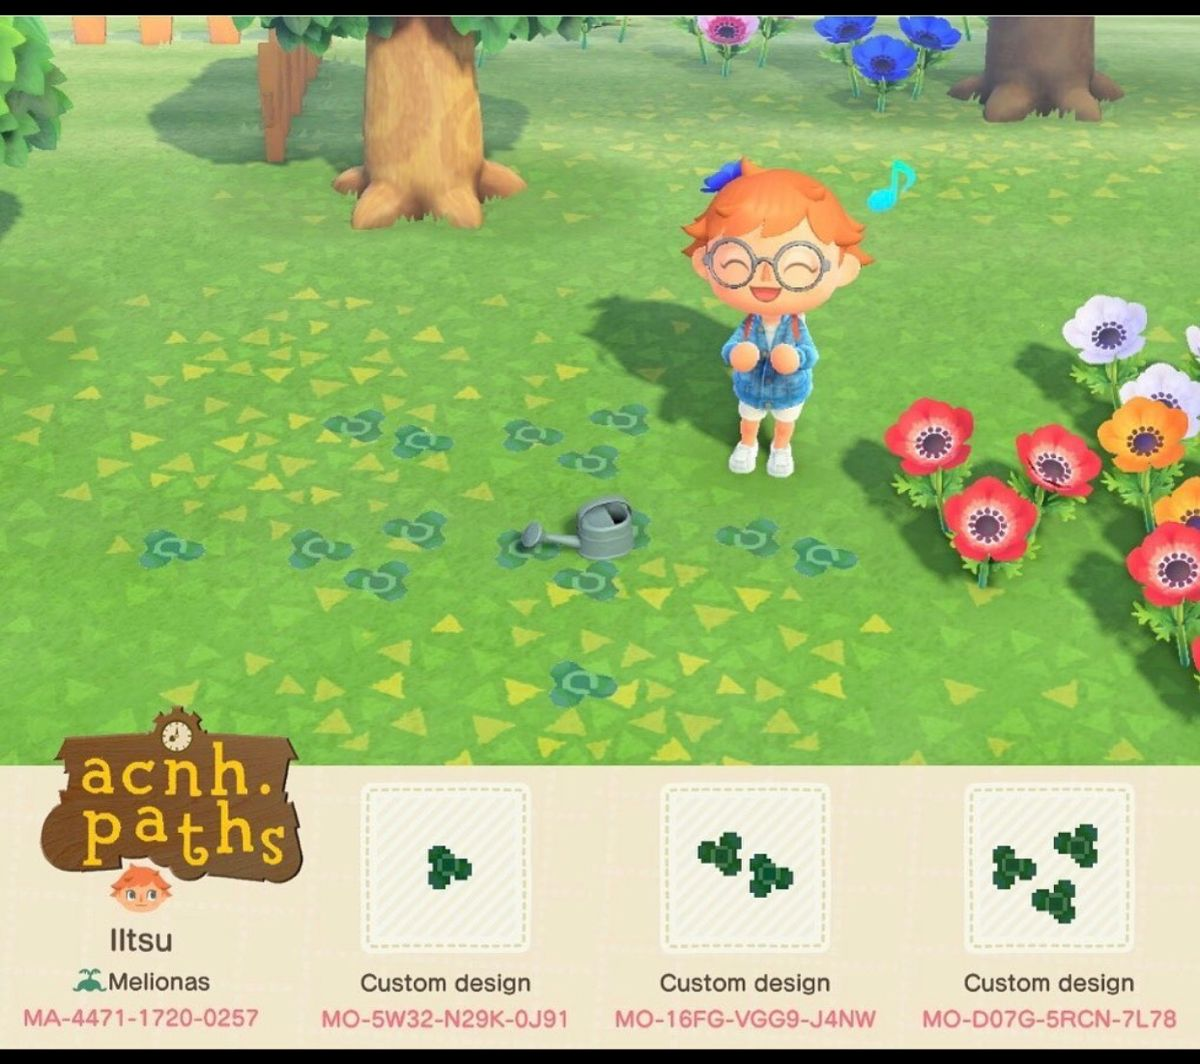 Pin by Mike on Animal Crossing Paths in 2020 Animal